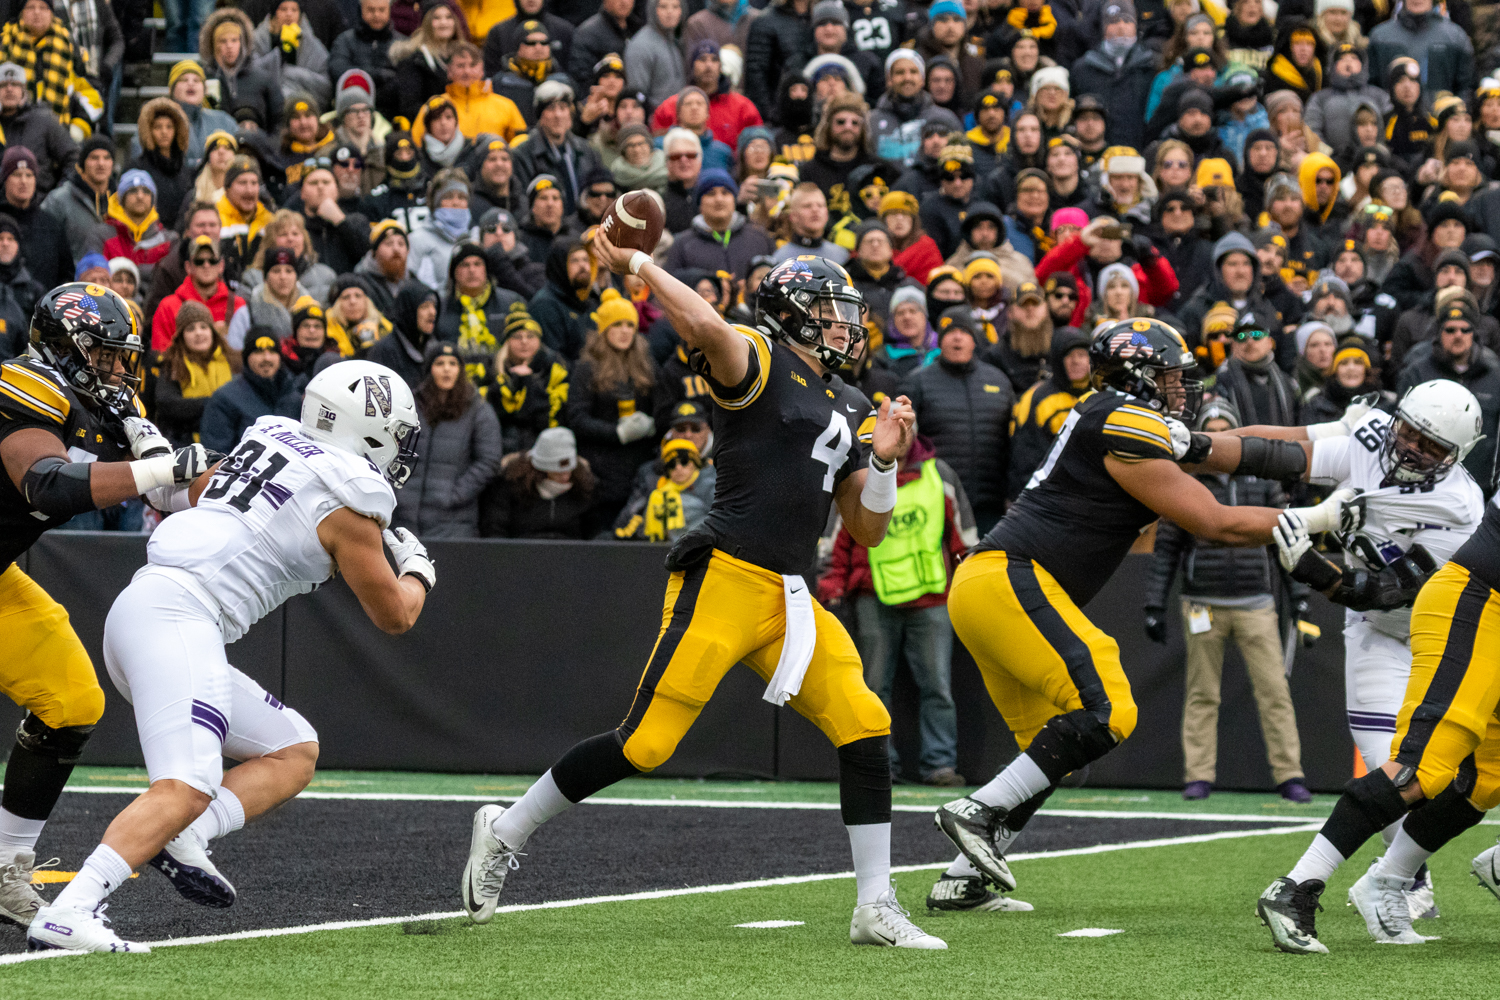 Iowa quarterback Nate Stanley (4) drops back to pass during a game against Northwestern University on Saturday, Nov. 10, 2018 at Kinnick Stadium in Iowa City. The Wildcats defeated the Hawkeyes 14-10.